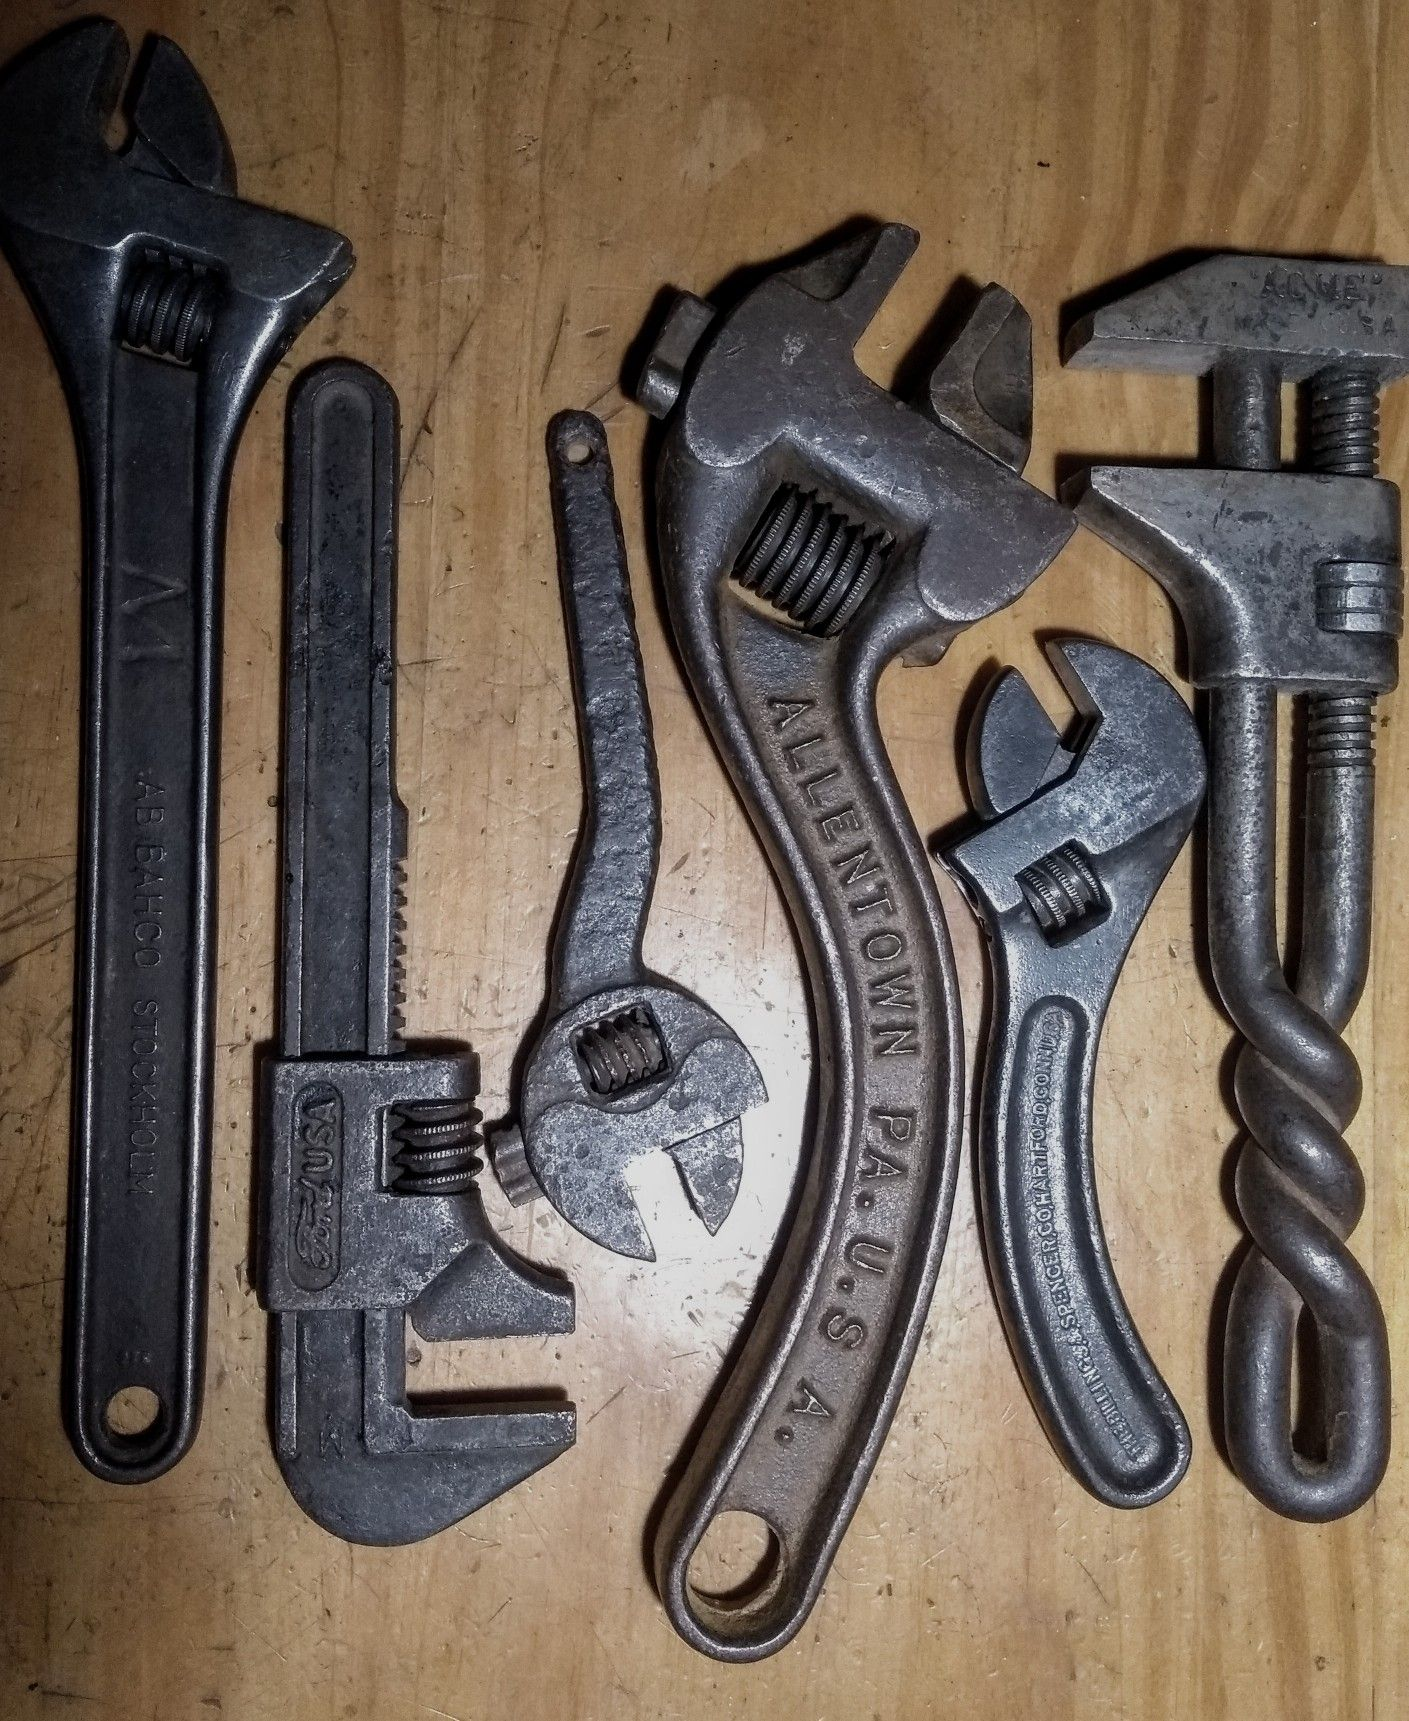 Vintage wrenches | Old Tools in 2019 | Old tools, Blacksmith tools